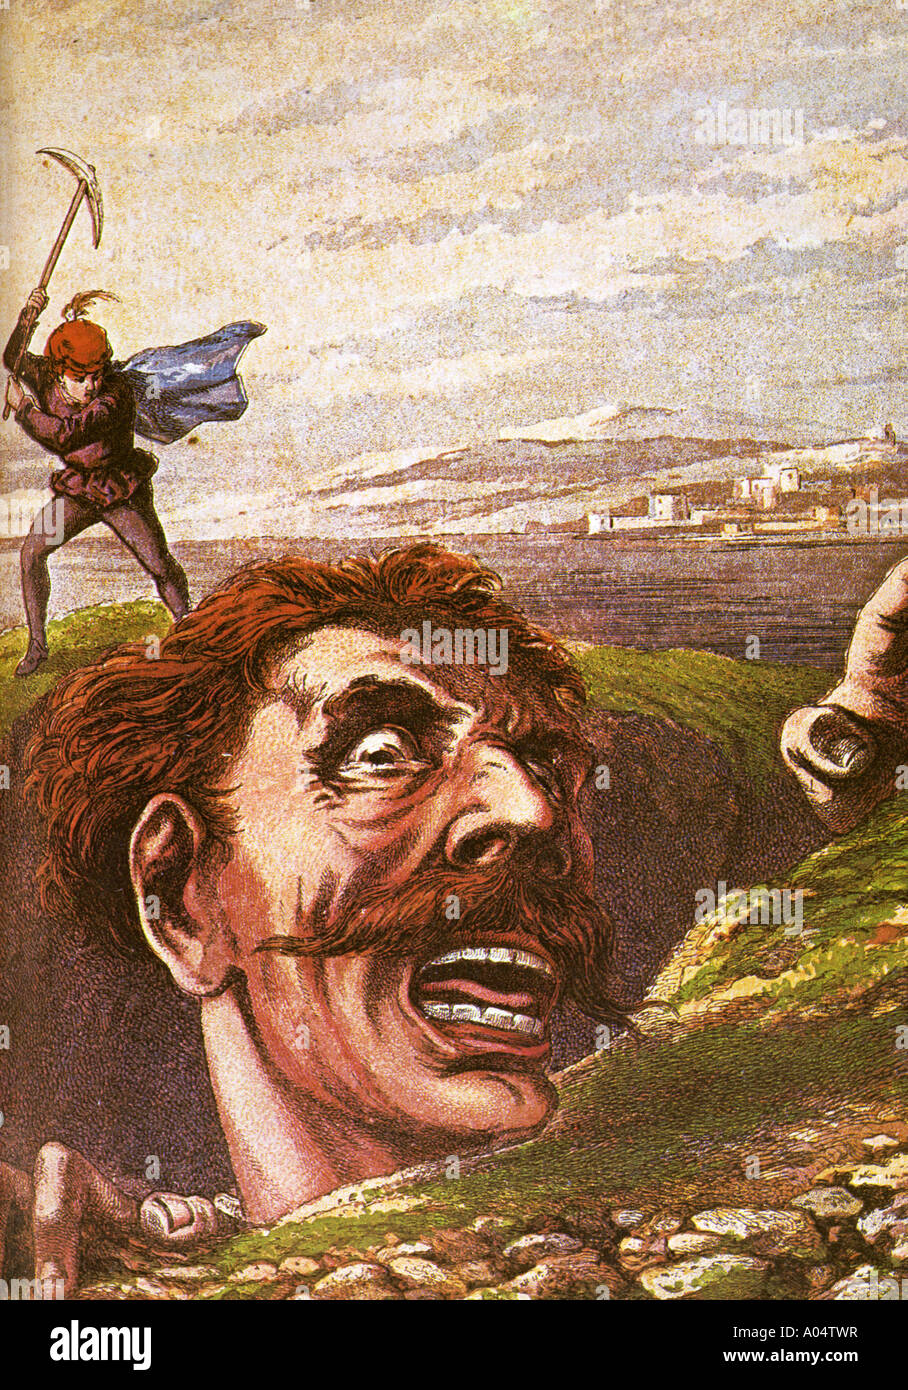 JACK THE GIANT KILLER kills the Cornish giant in this 1872